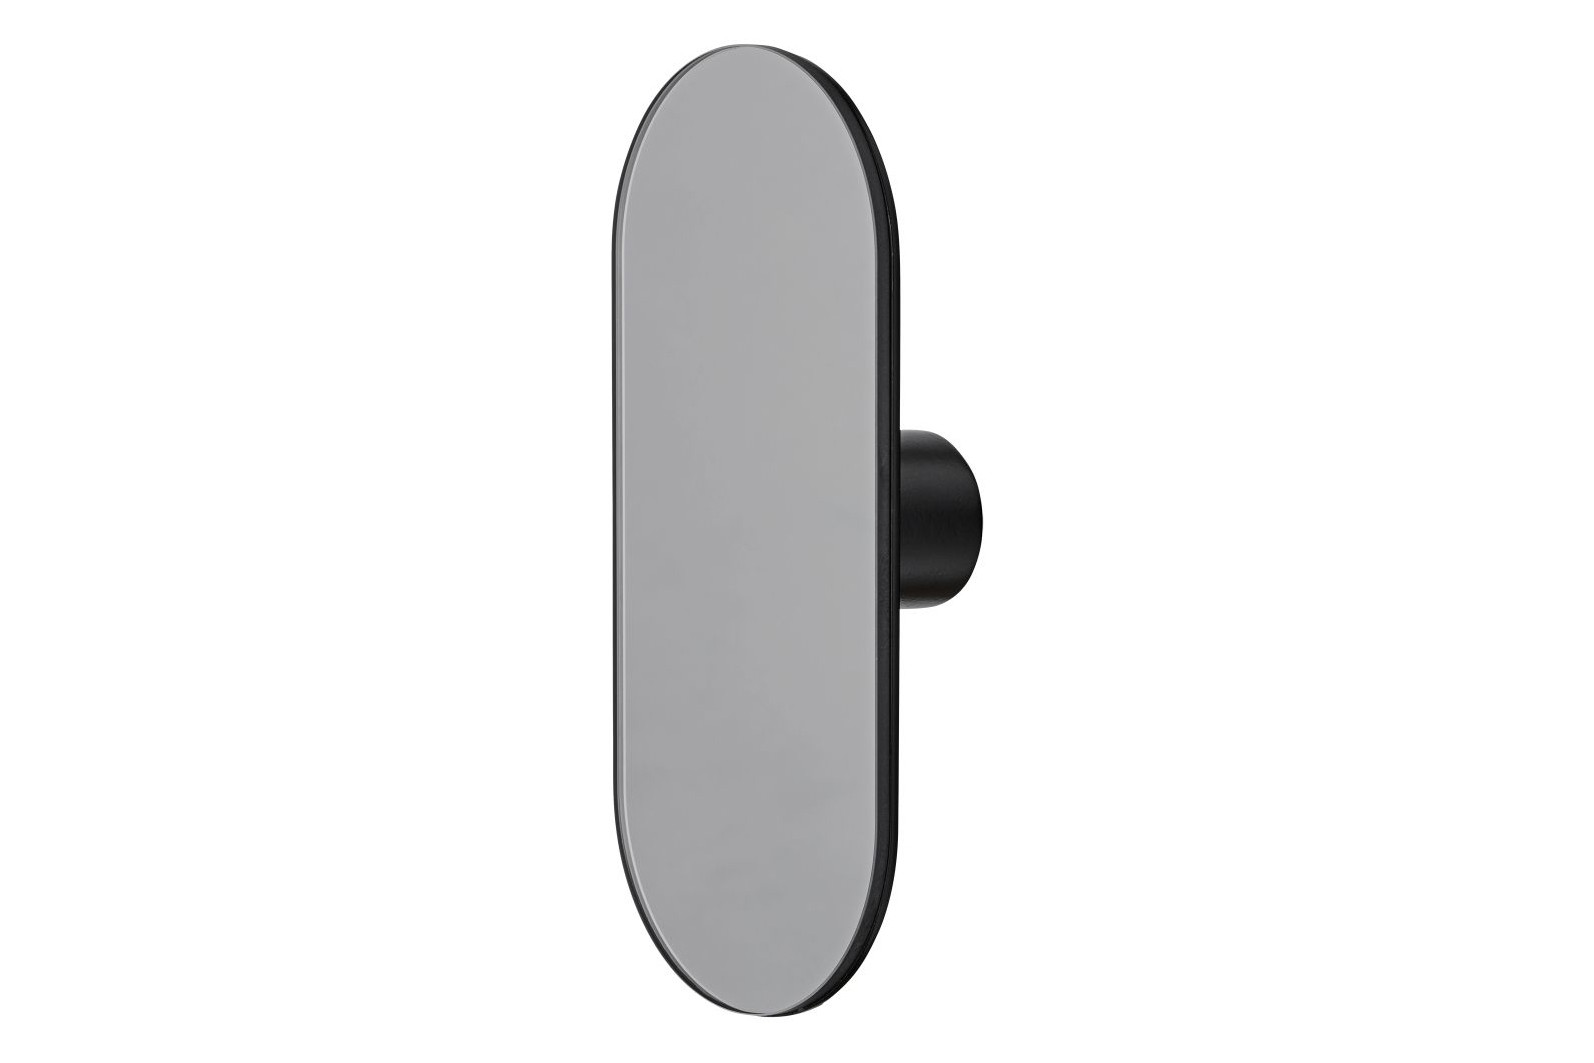 Ovali Mirror Hook - Set of 6 Black